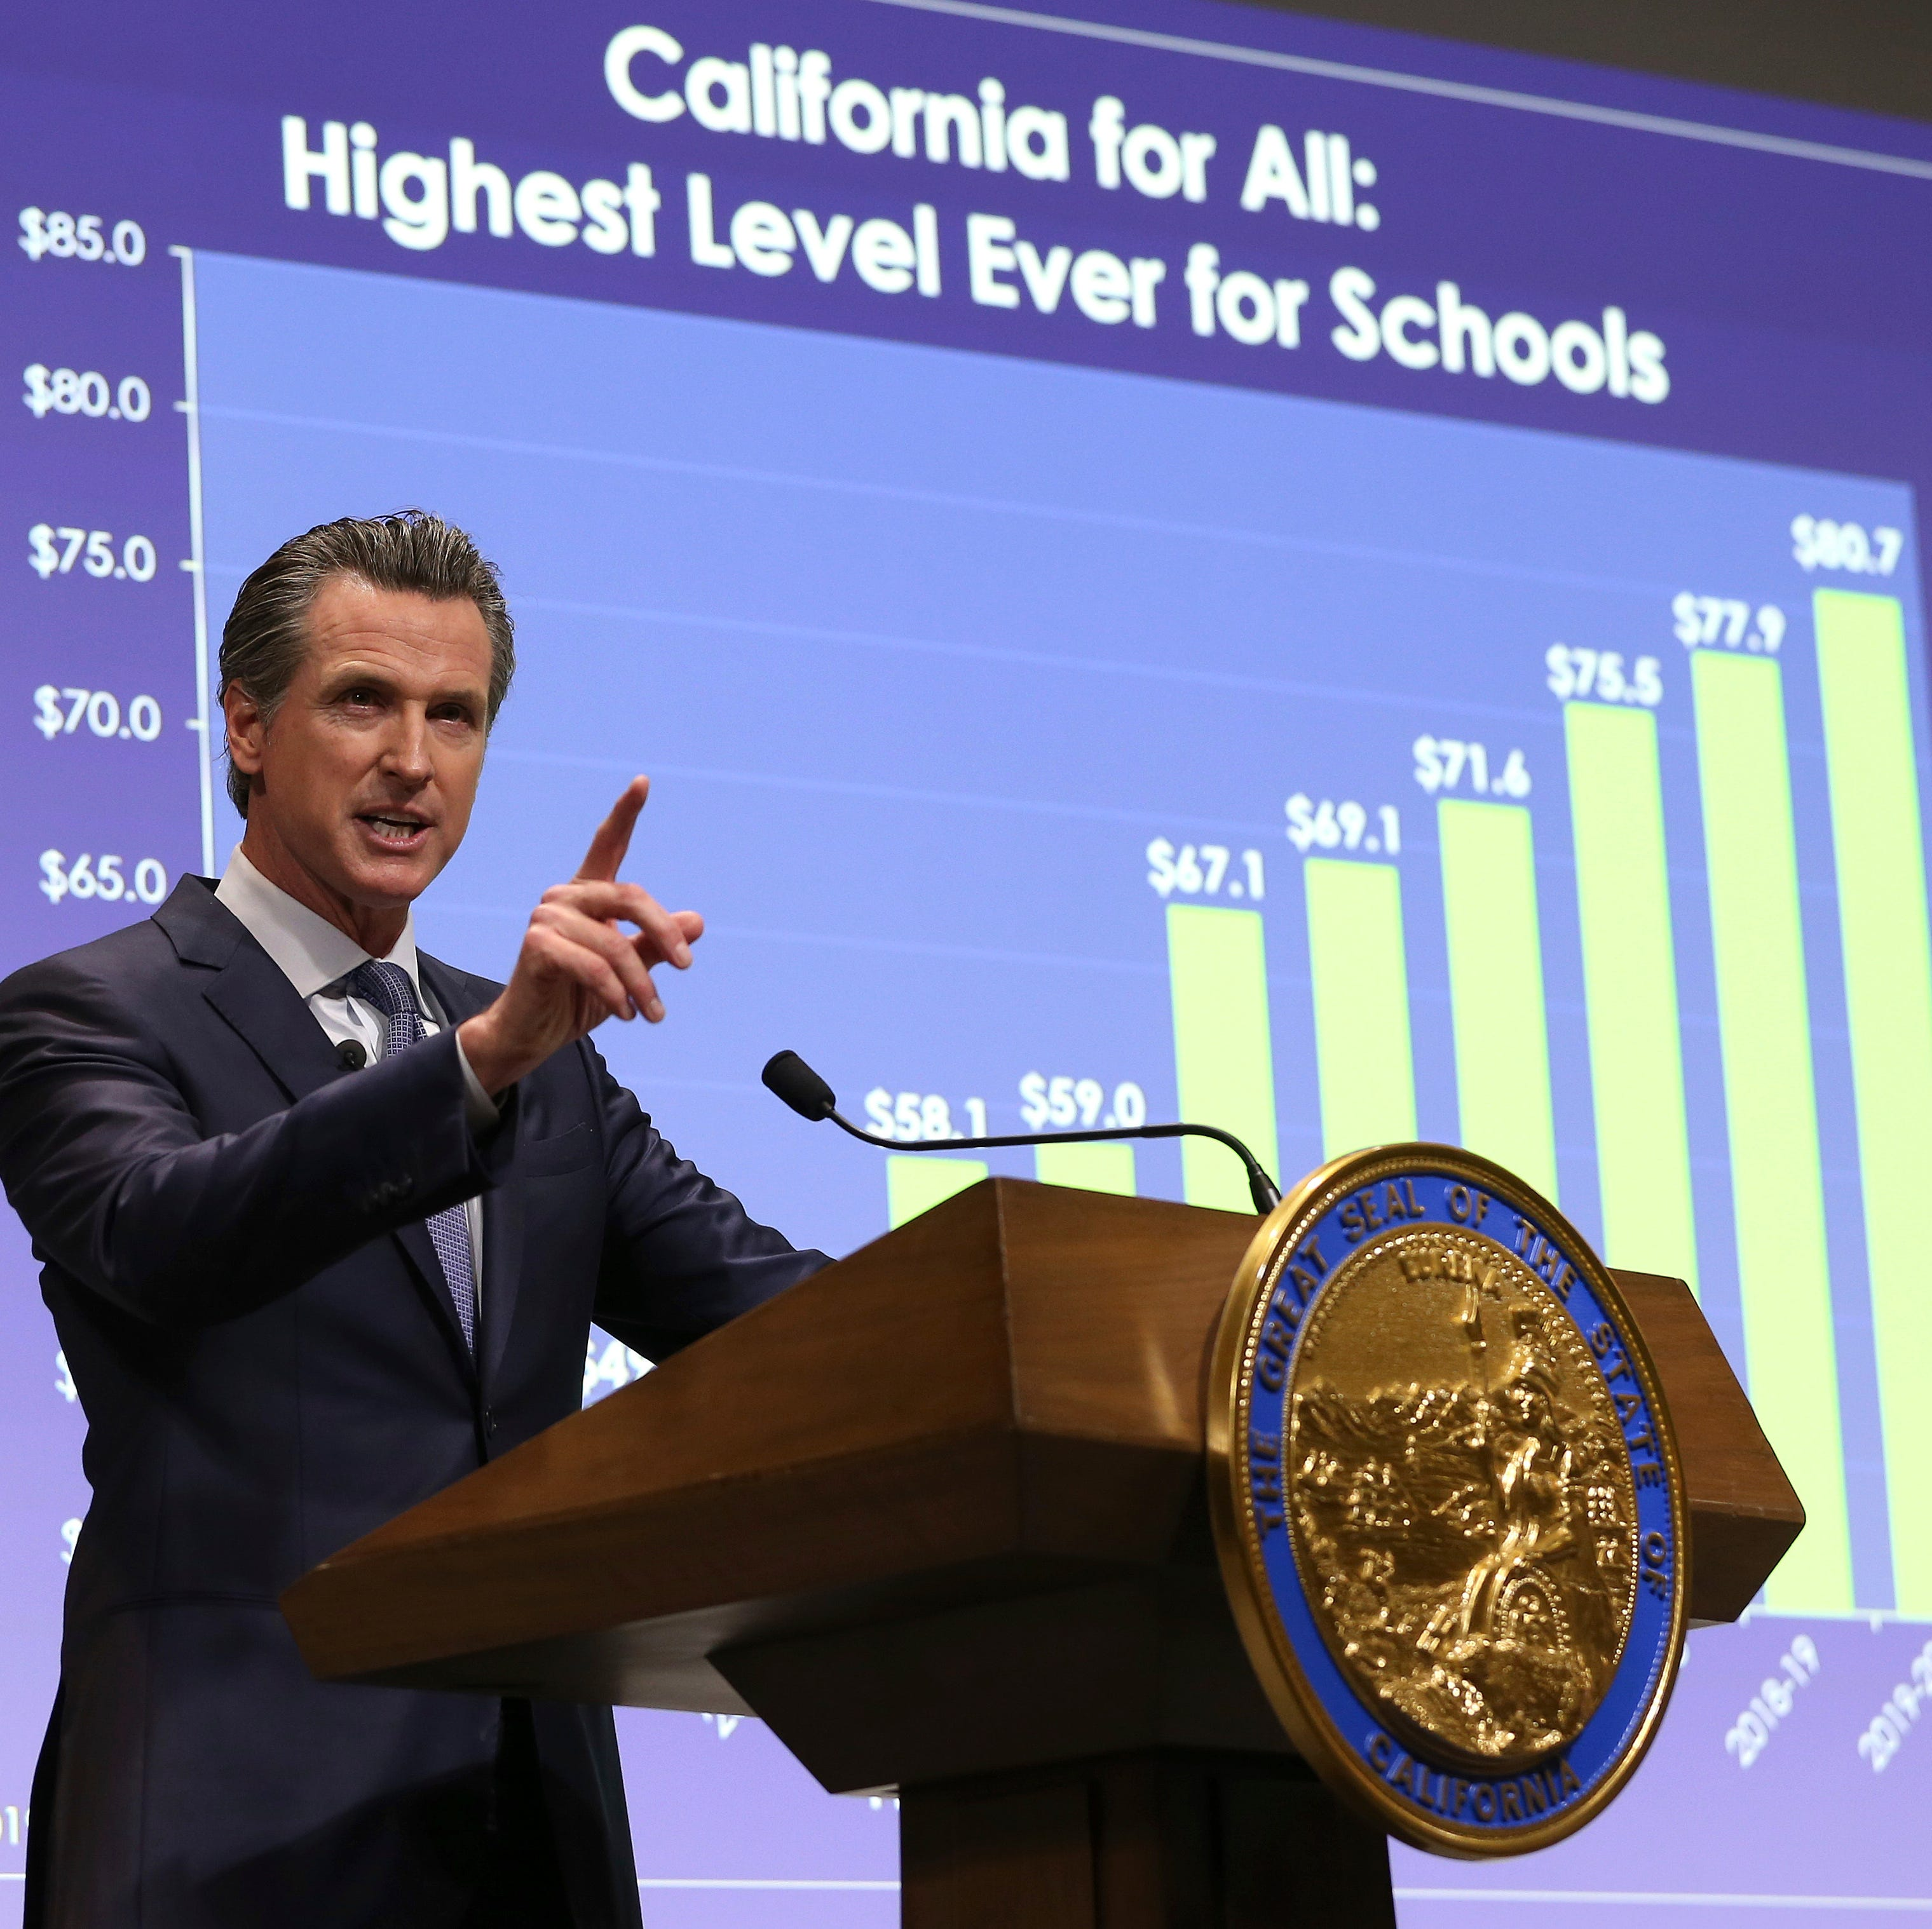 Gavin Newsom's first budget uses surplus to expand funding for housing, healthcare and education